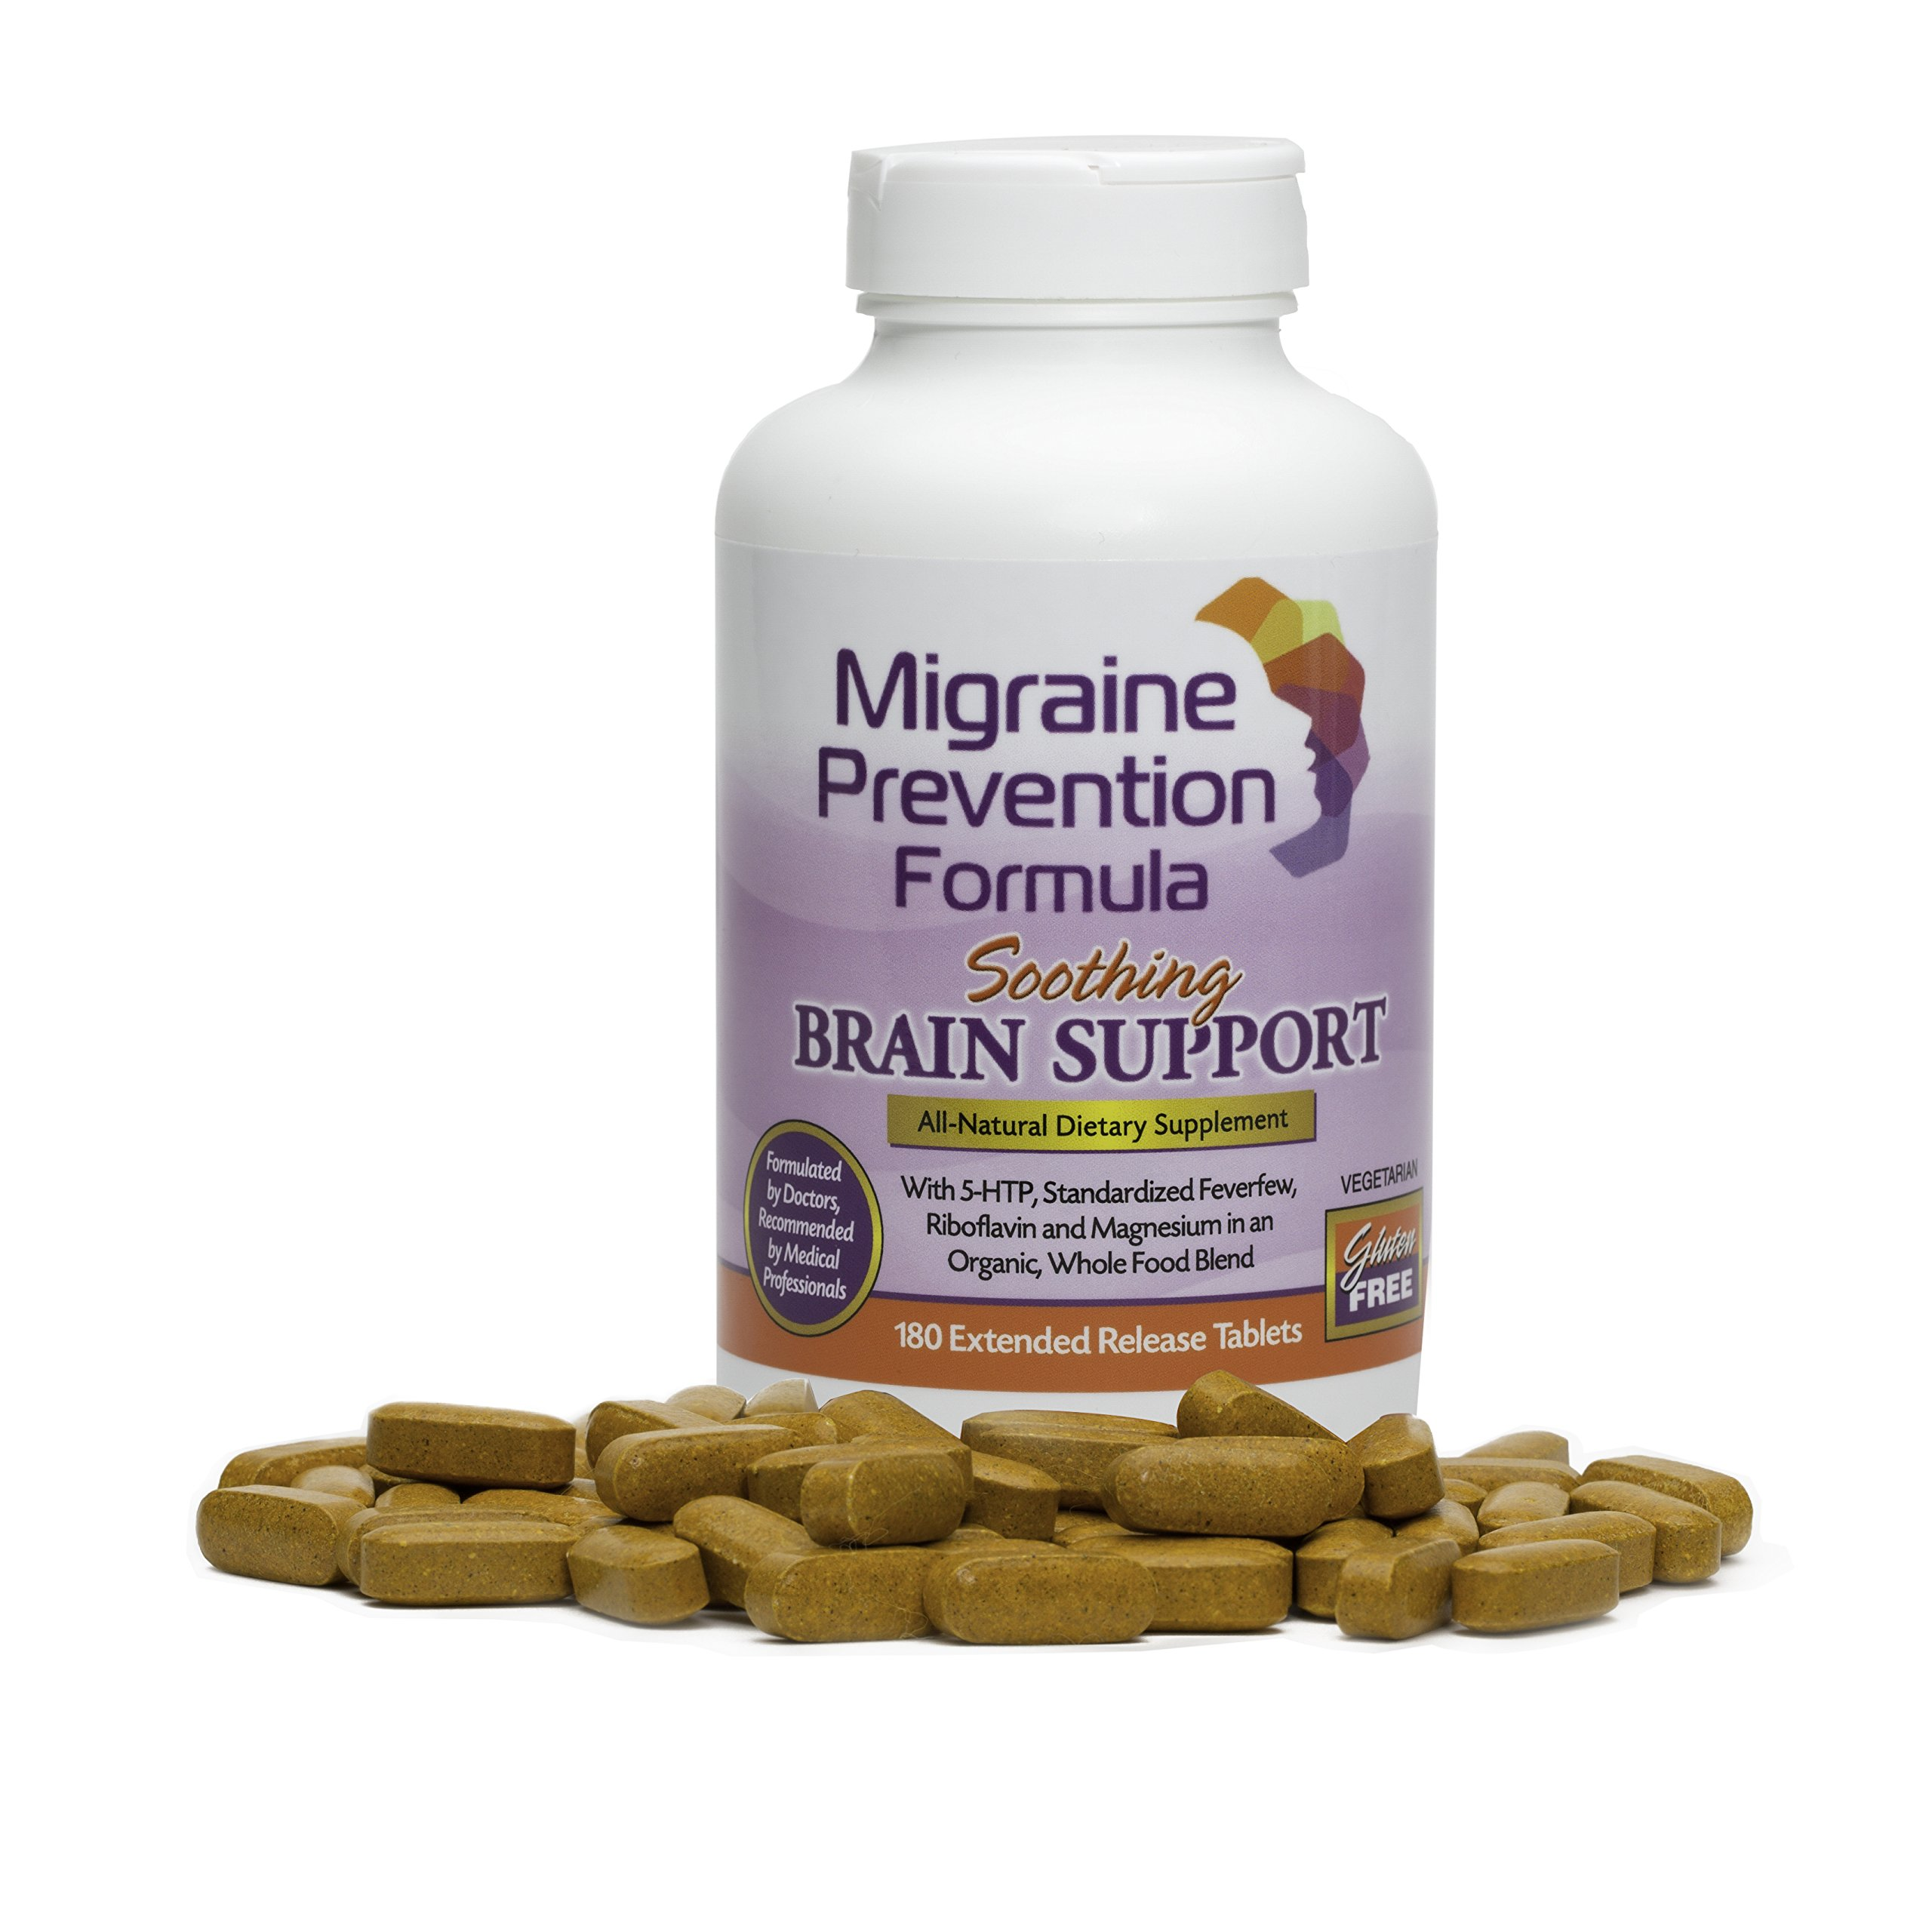 Dr. Knowles - Migraine Prevention Formula - 180 Caplets - 3 Month Supply - Headache Treatment and Relief - Prevent Migraines While You Treat by Free Shipping available! - Dr. Andrew Knowles - Anesthesiologist, Pain Management Specialist, treat / prevent migraines and episodic / chronic headaches